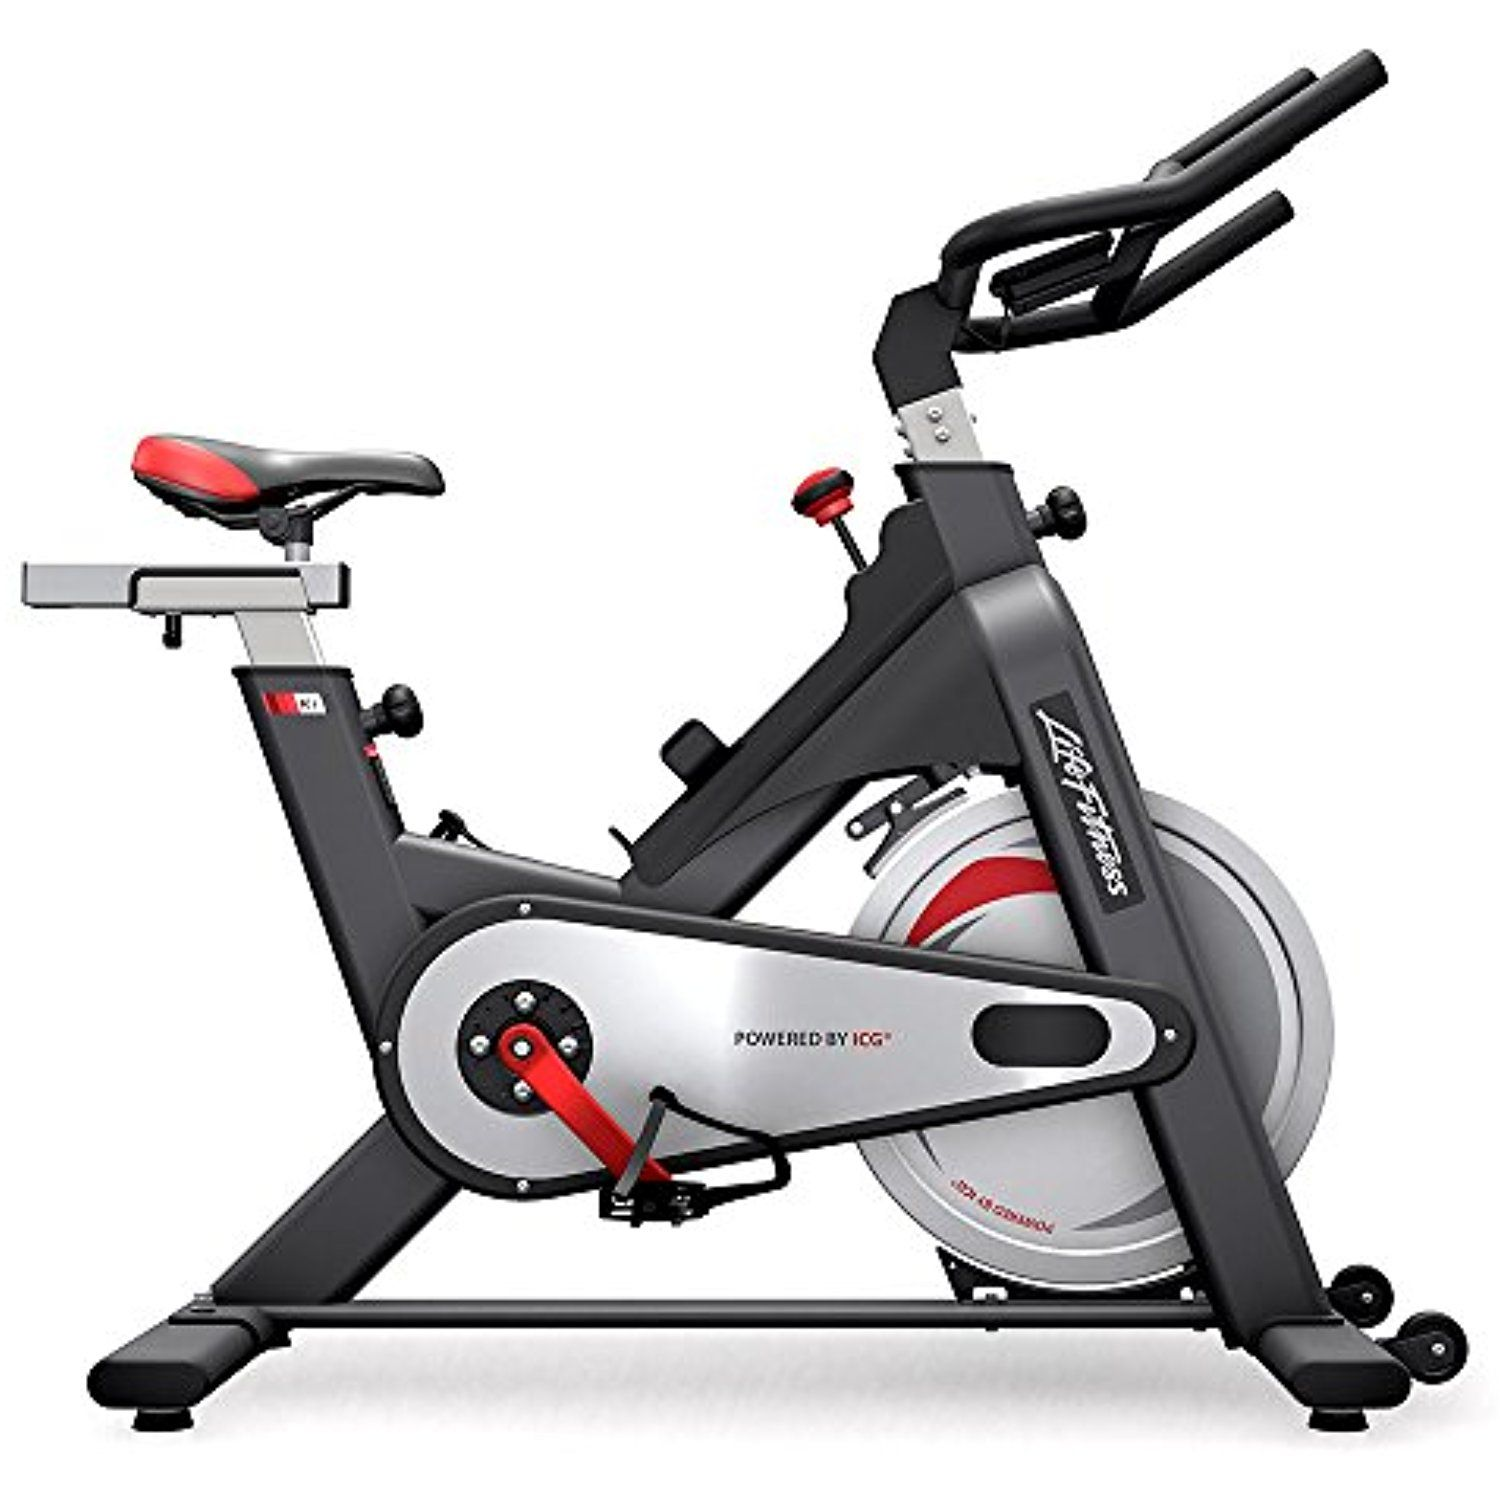 Life Fitness Ic1 Exercise Bikes Black Exercisefitness Biking Workout Exercise Bikes Indoor Bike